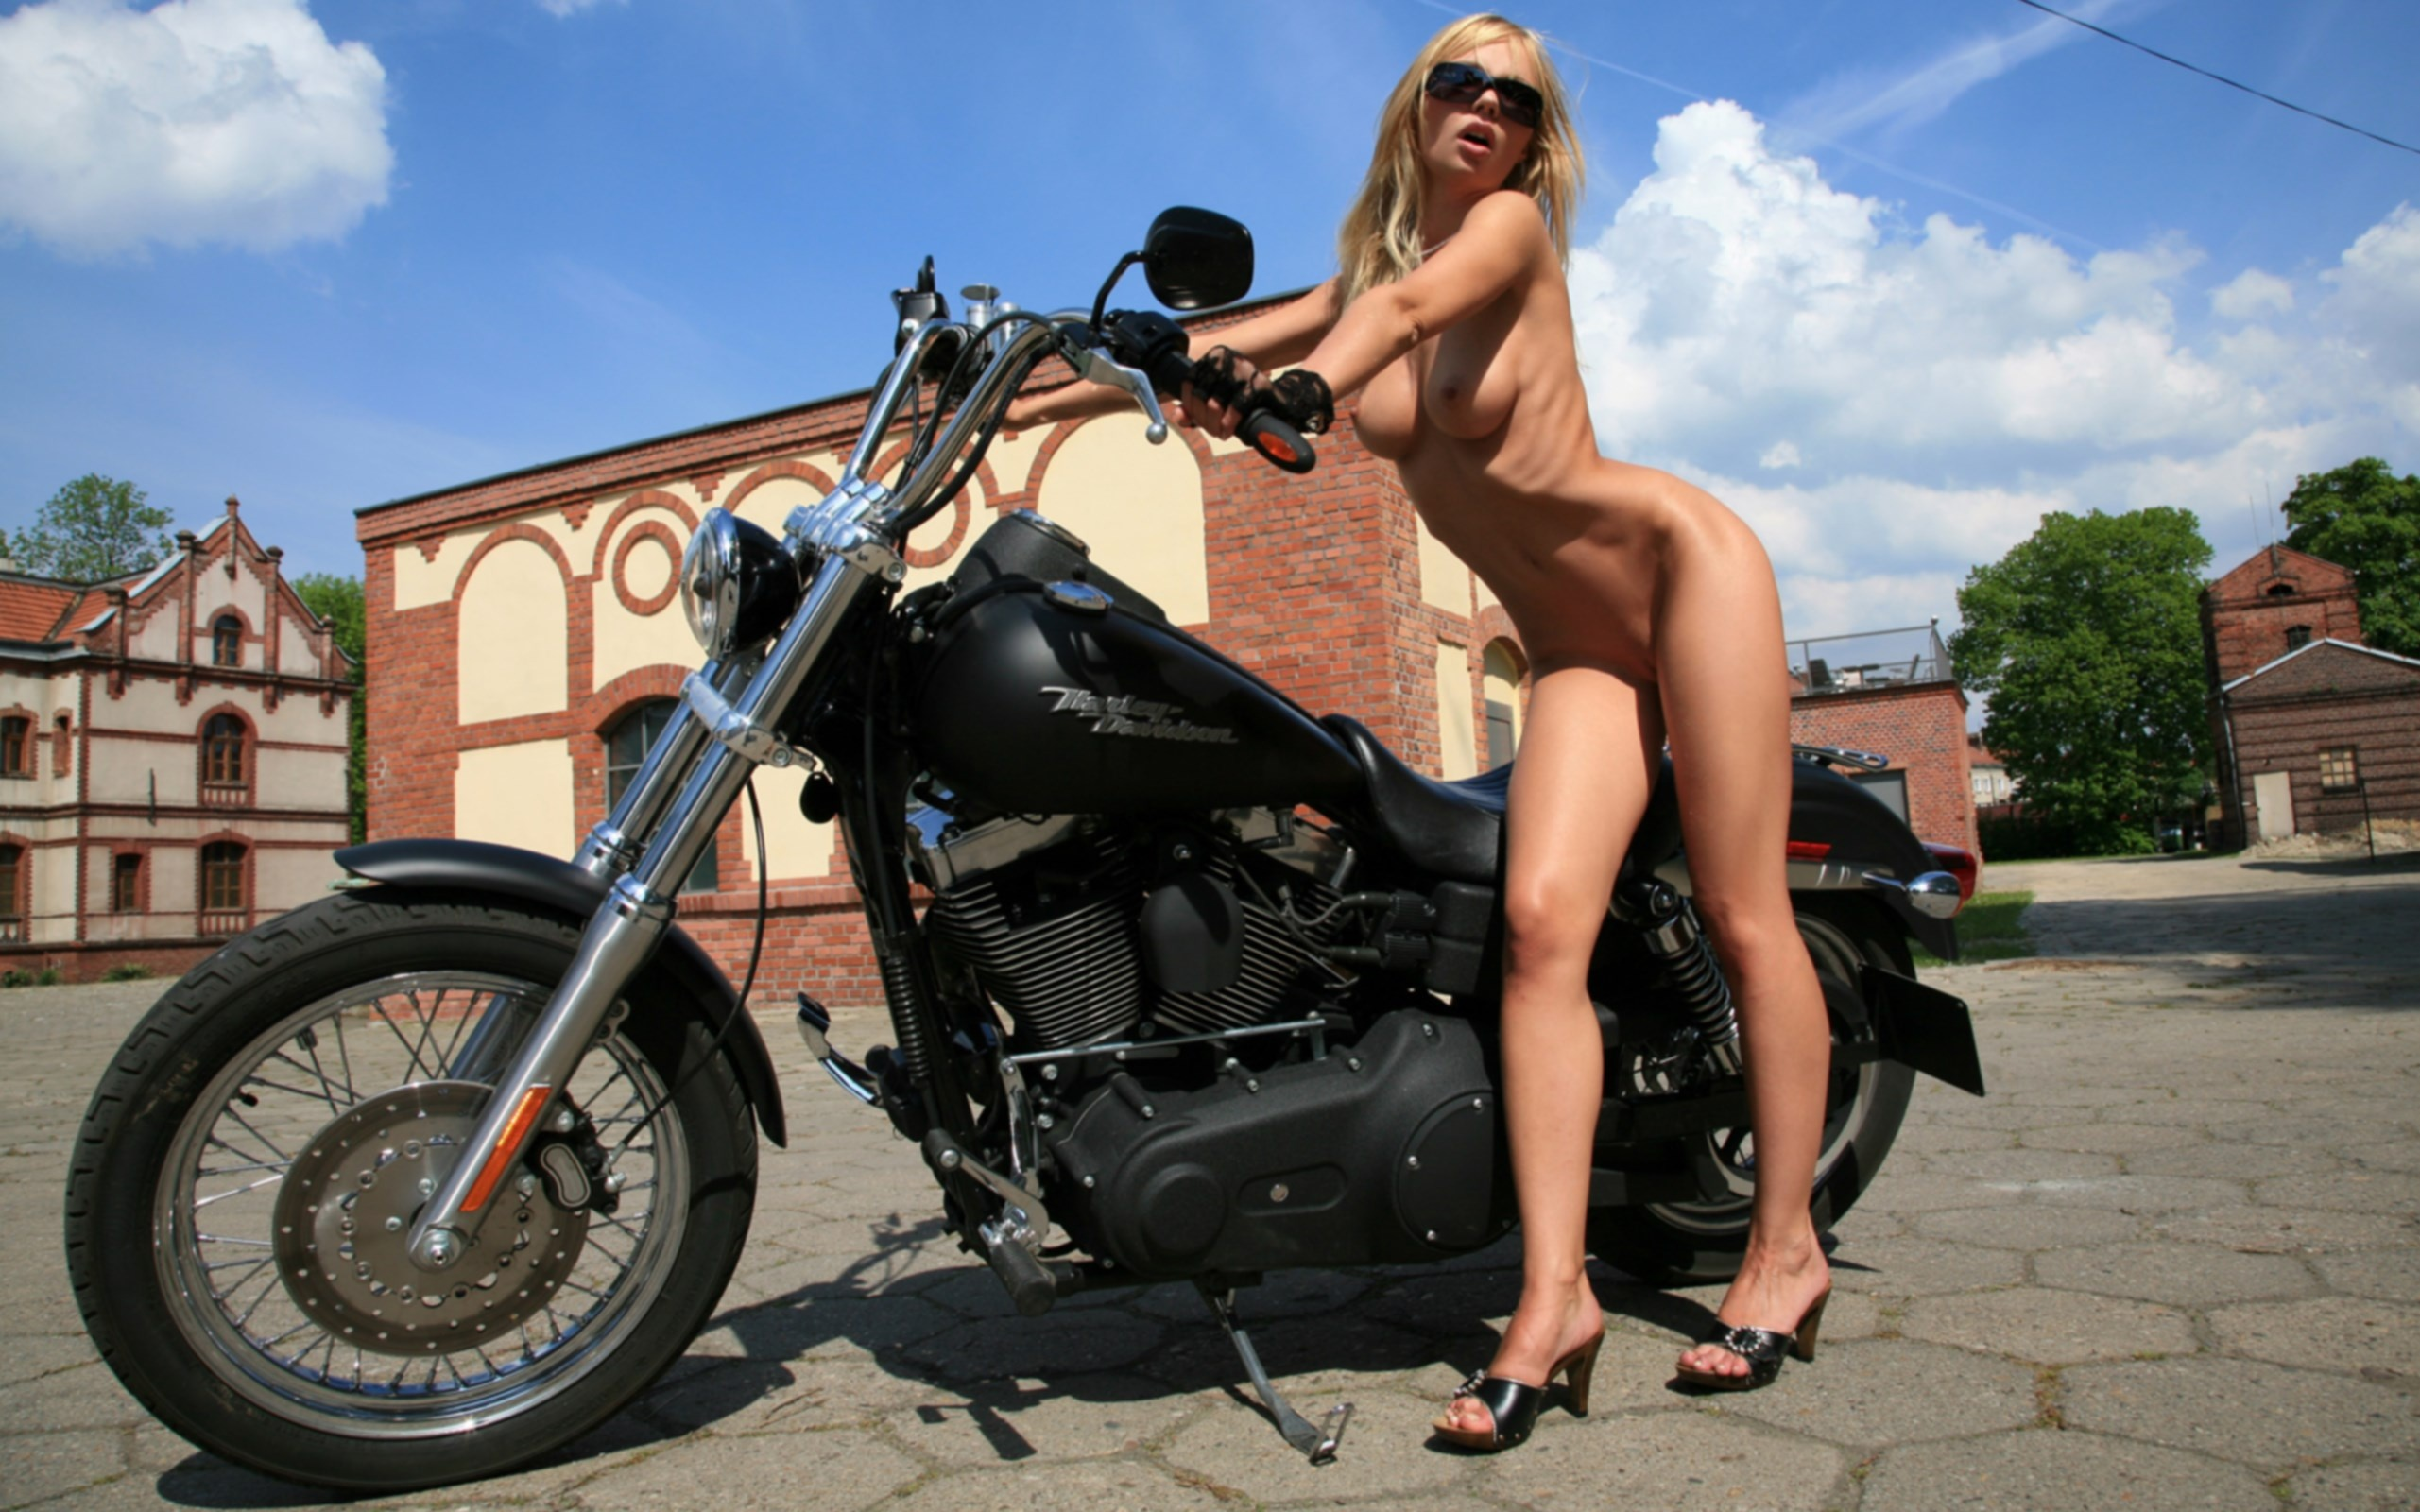 nude bobber motorcycles babes